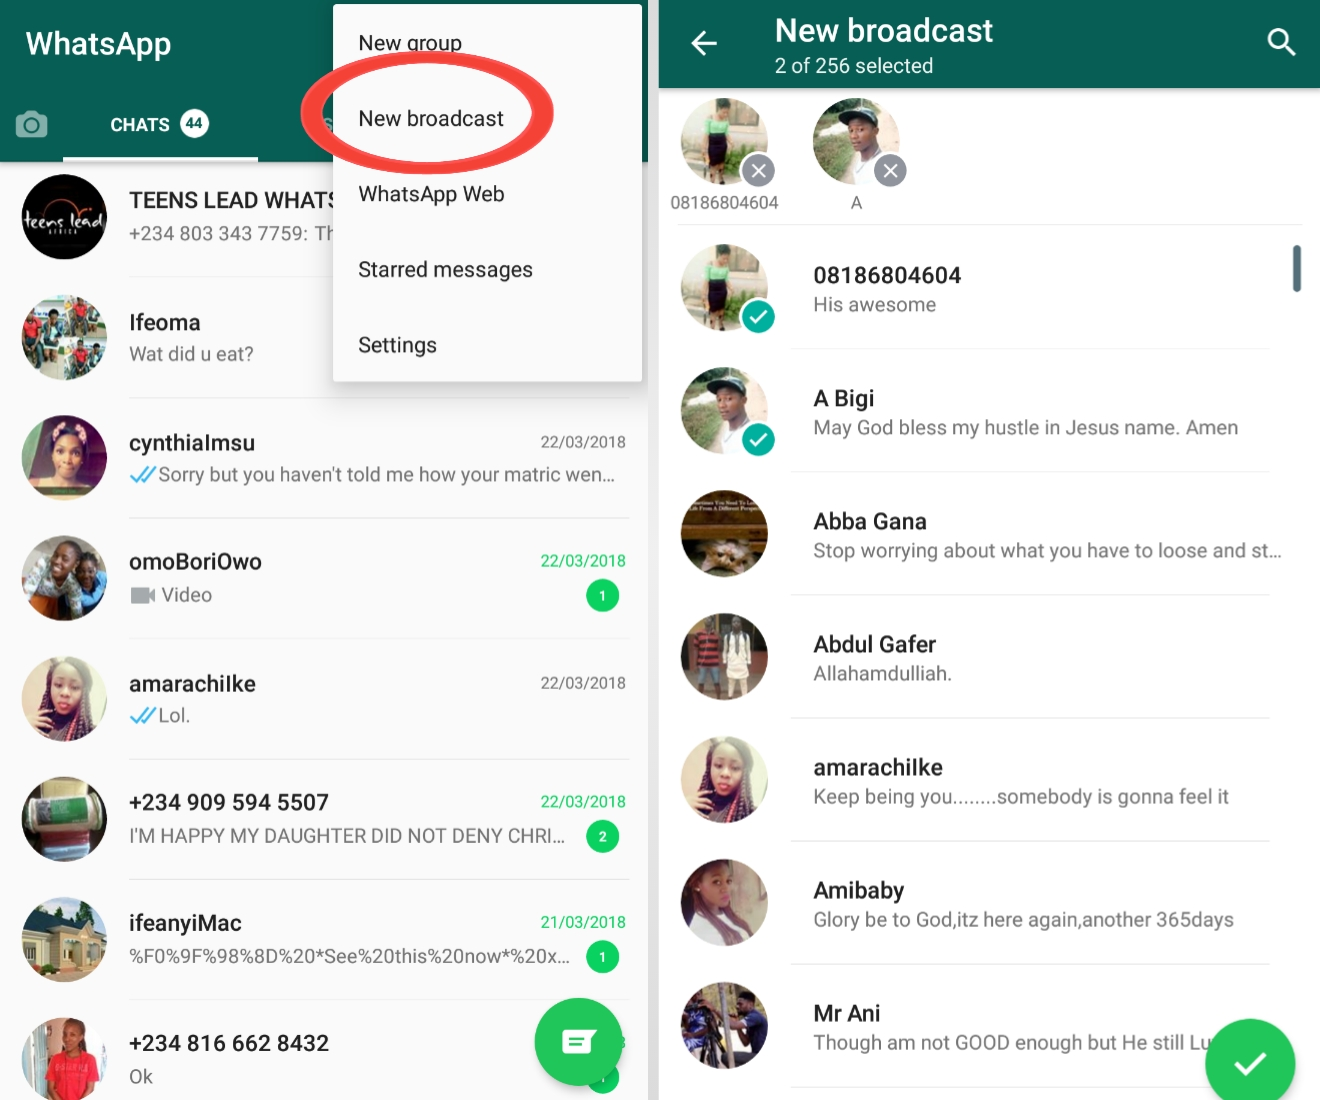 How to use the broadcast feature provided on WhatsApp